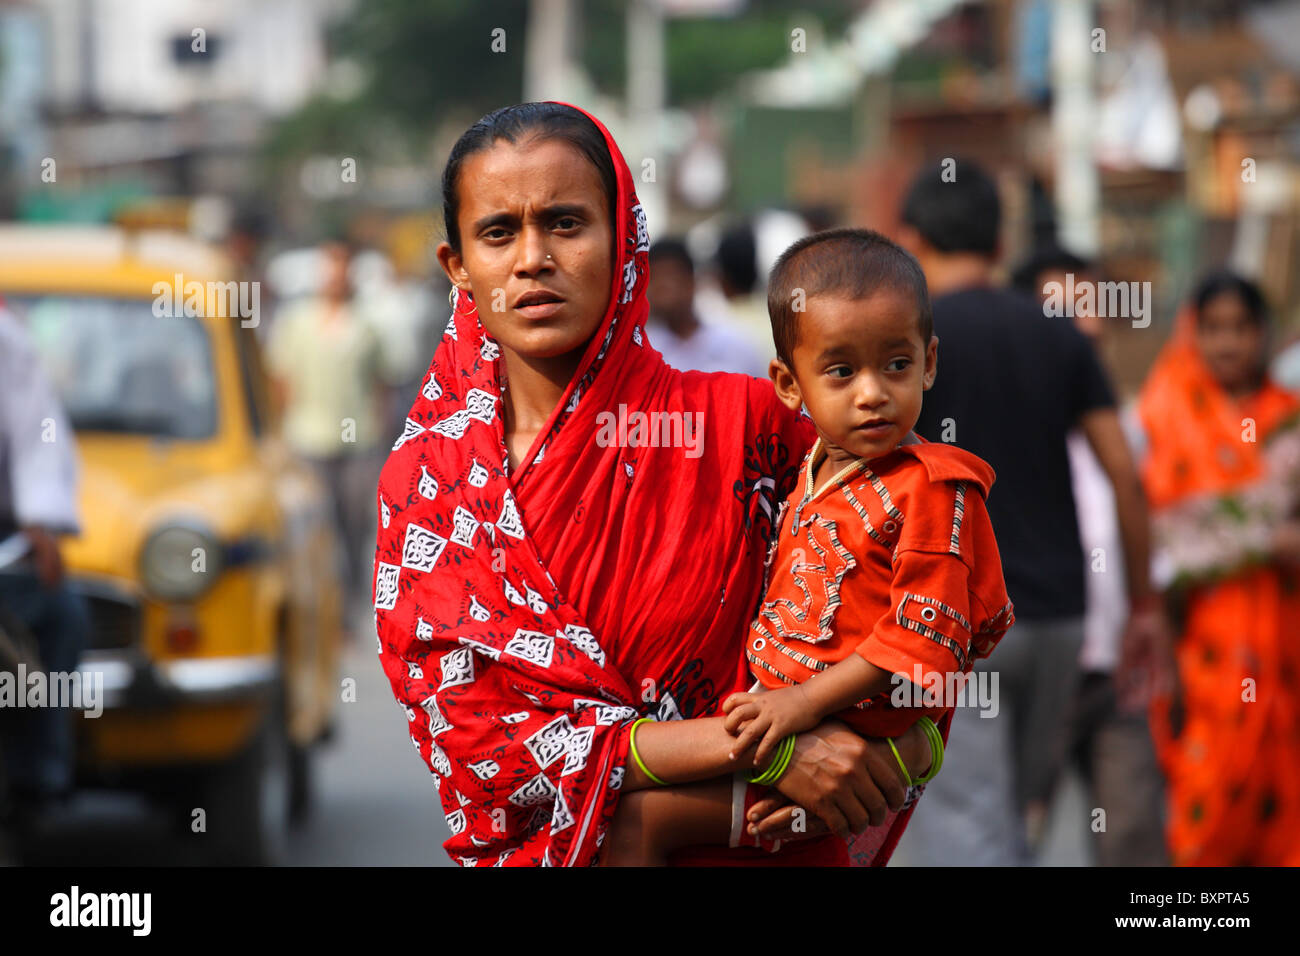 Mother and child in street, Calcutta, India Stock Photo